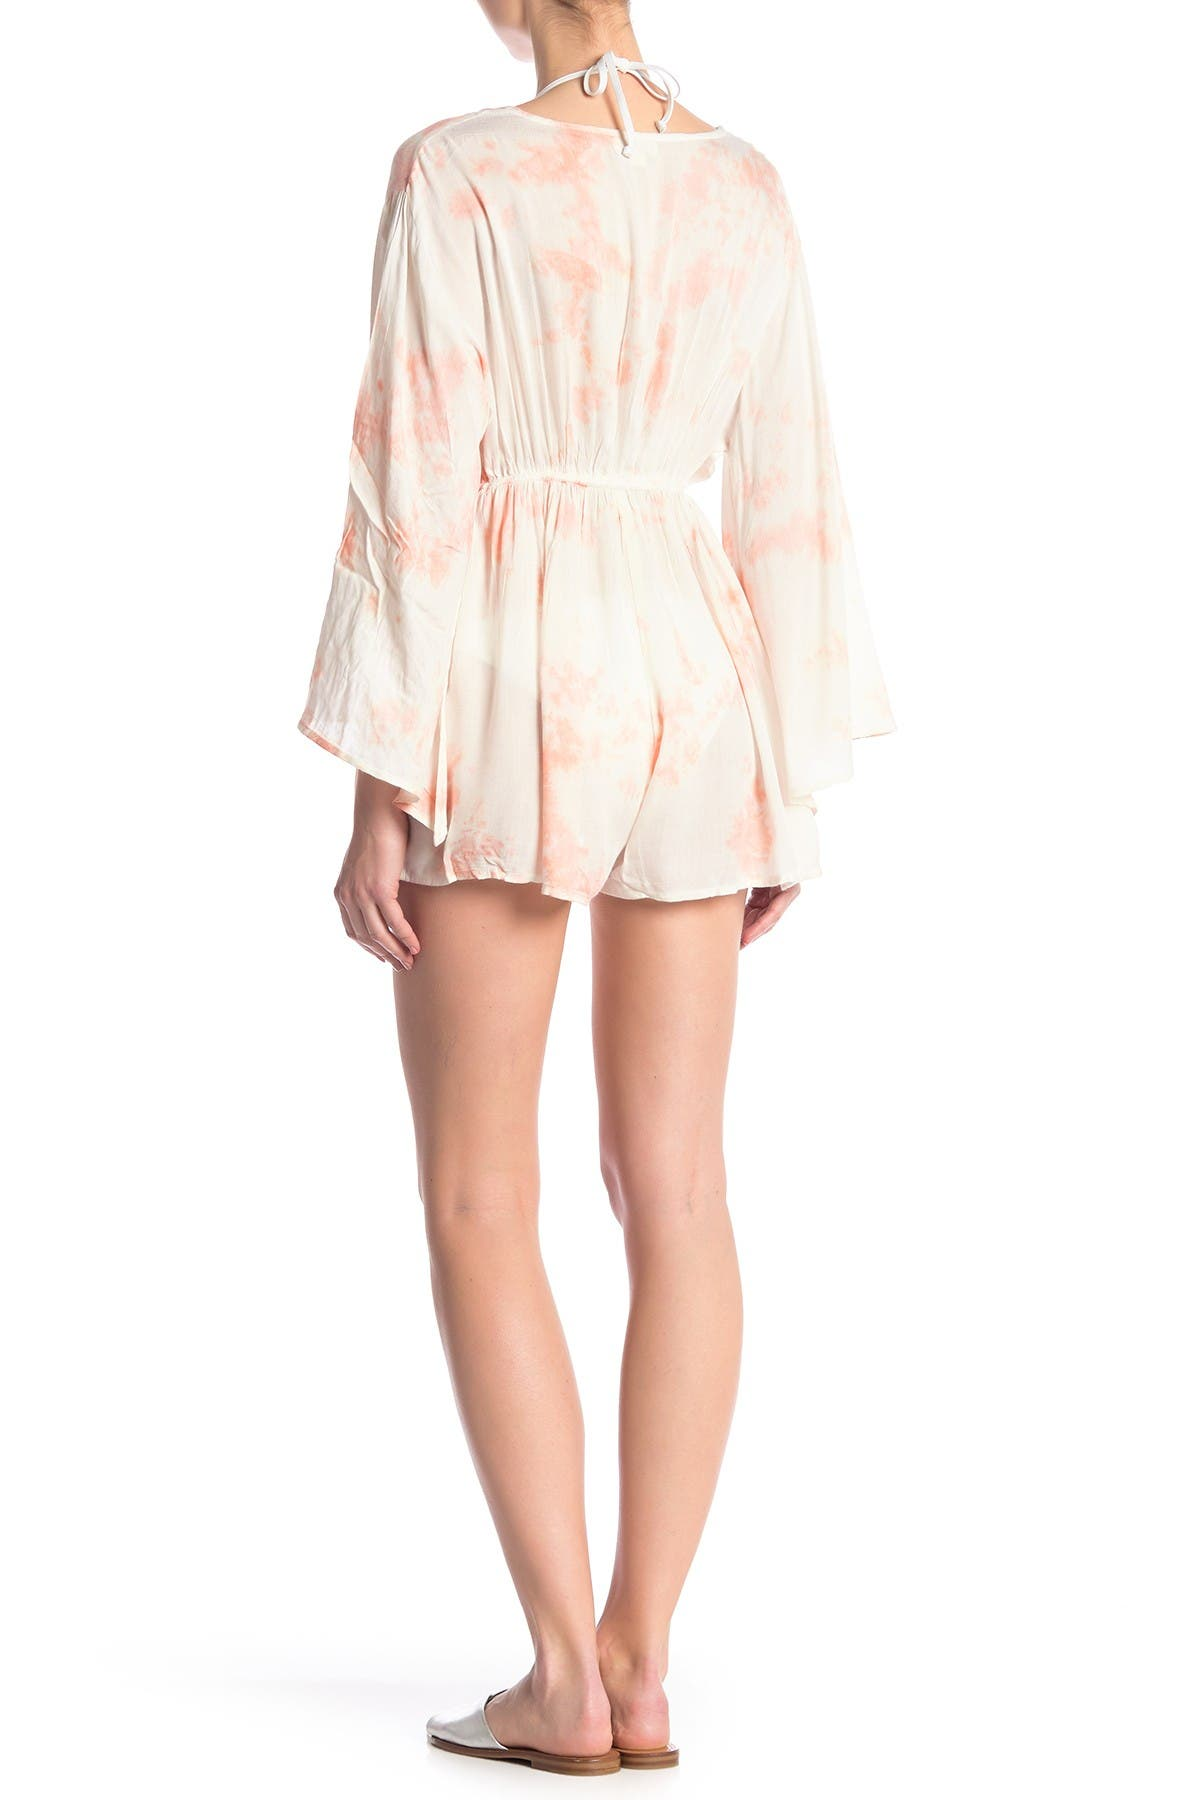 Image of BOHO ME Tie Dye Plunge Cover-Up Tunic